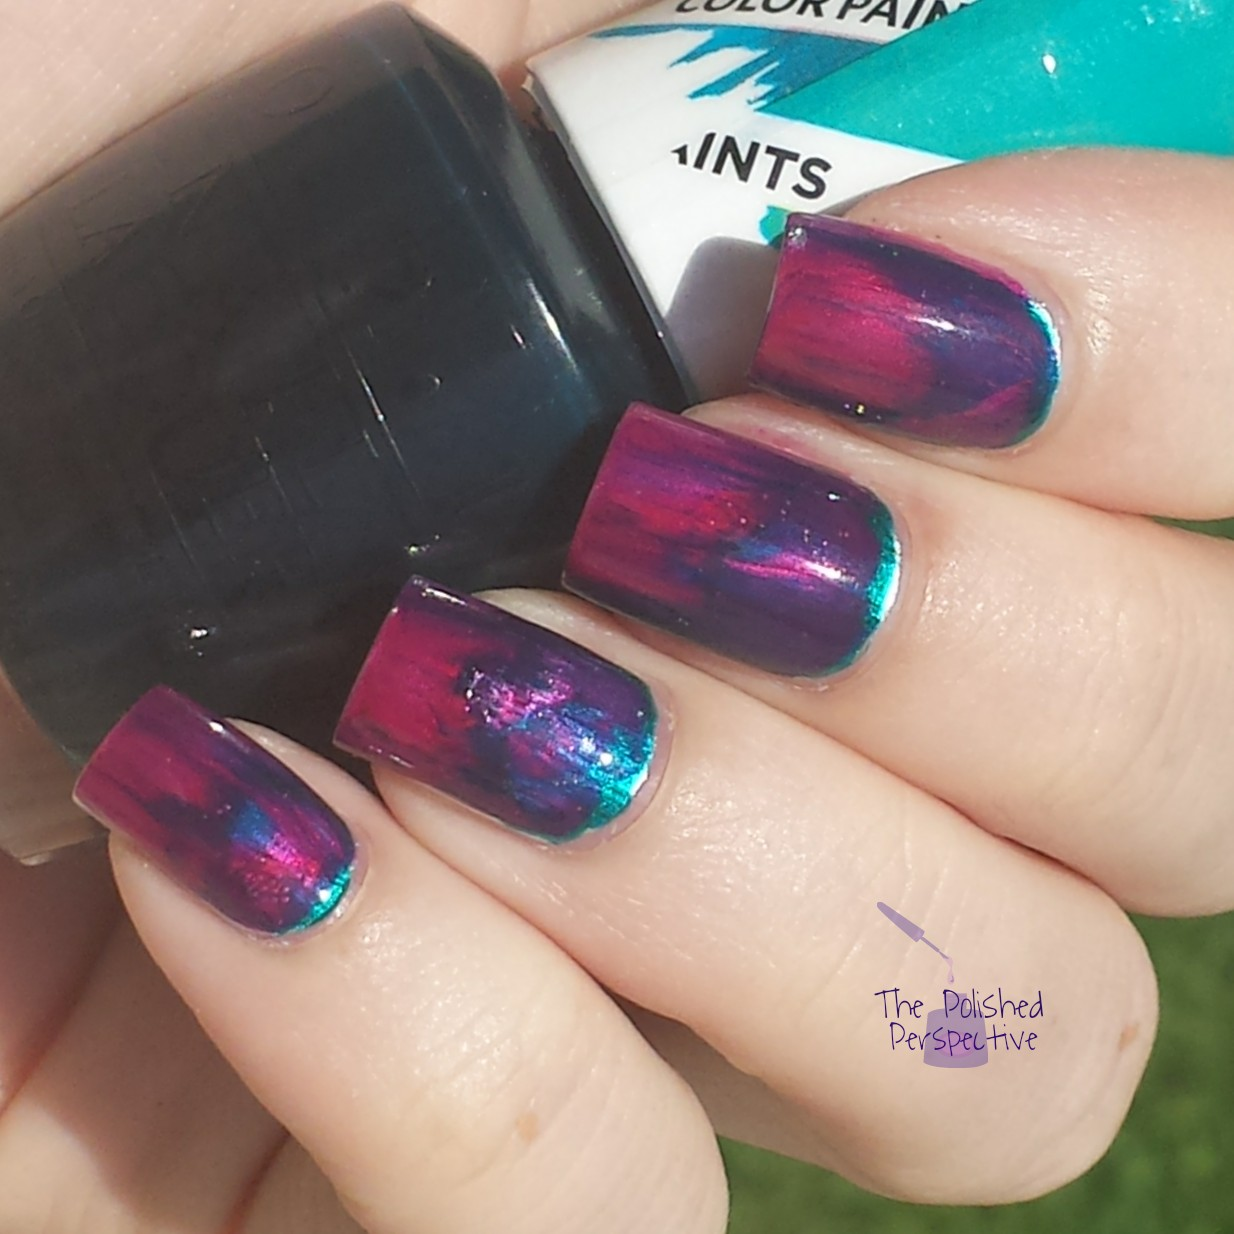 The Polished Perspective Opi Color Paints